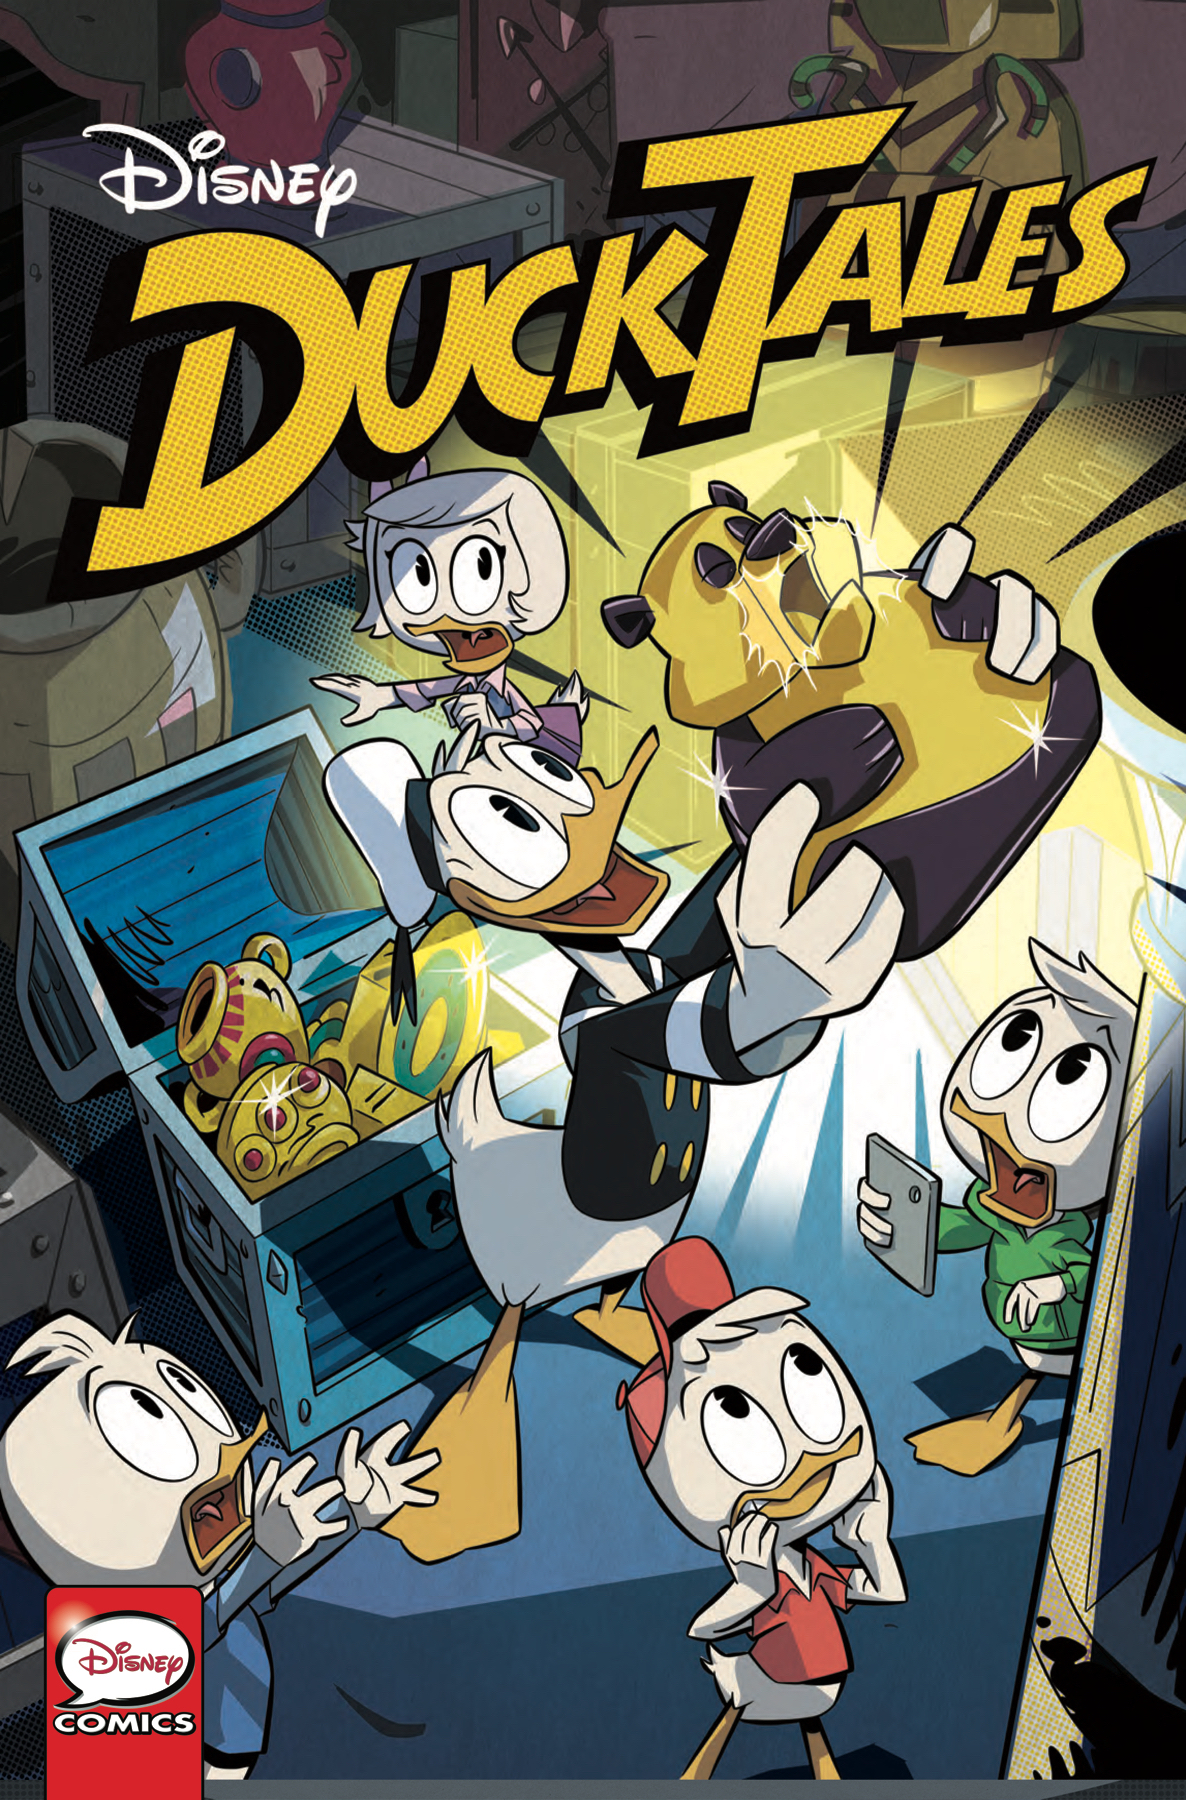 DUCKTALES SILENCE & SCIENCE #1 (OF 3) CVR A GHIGHLIONE